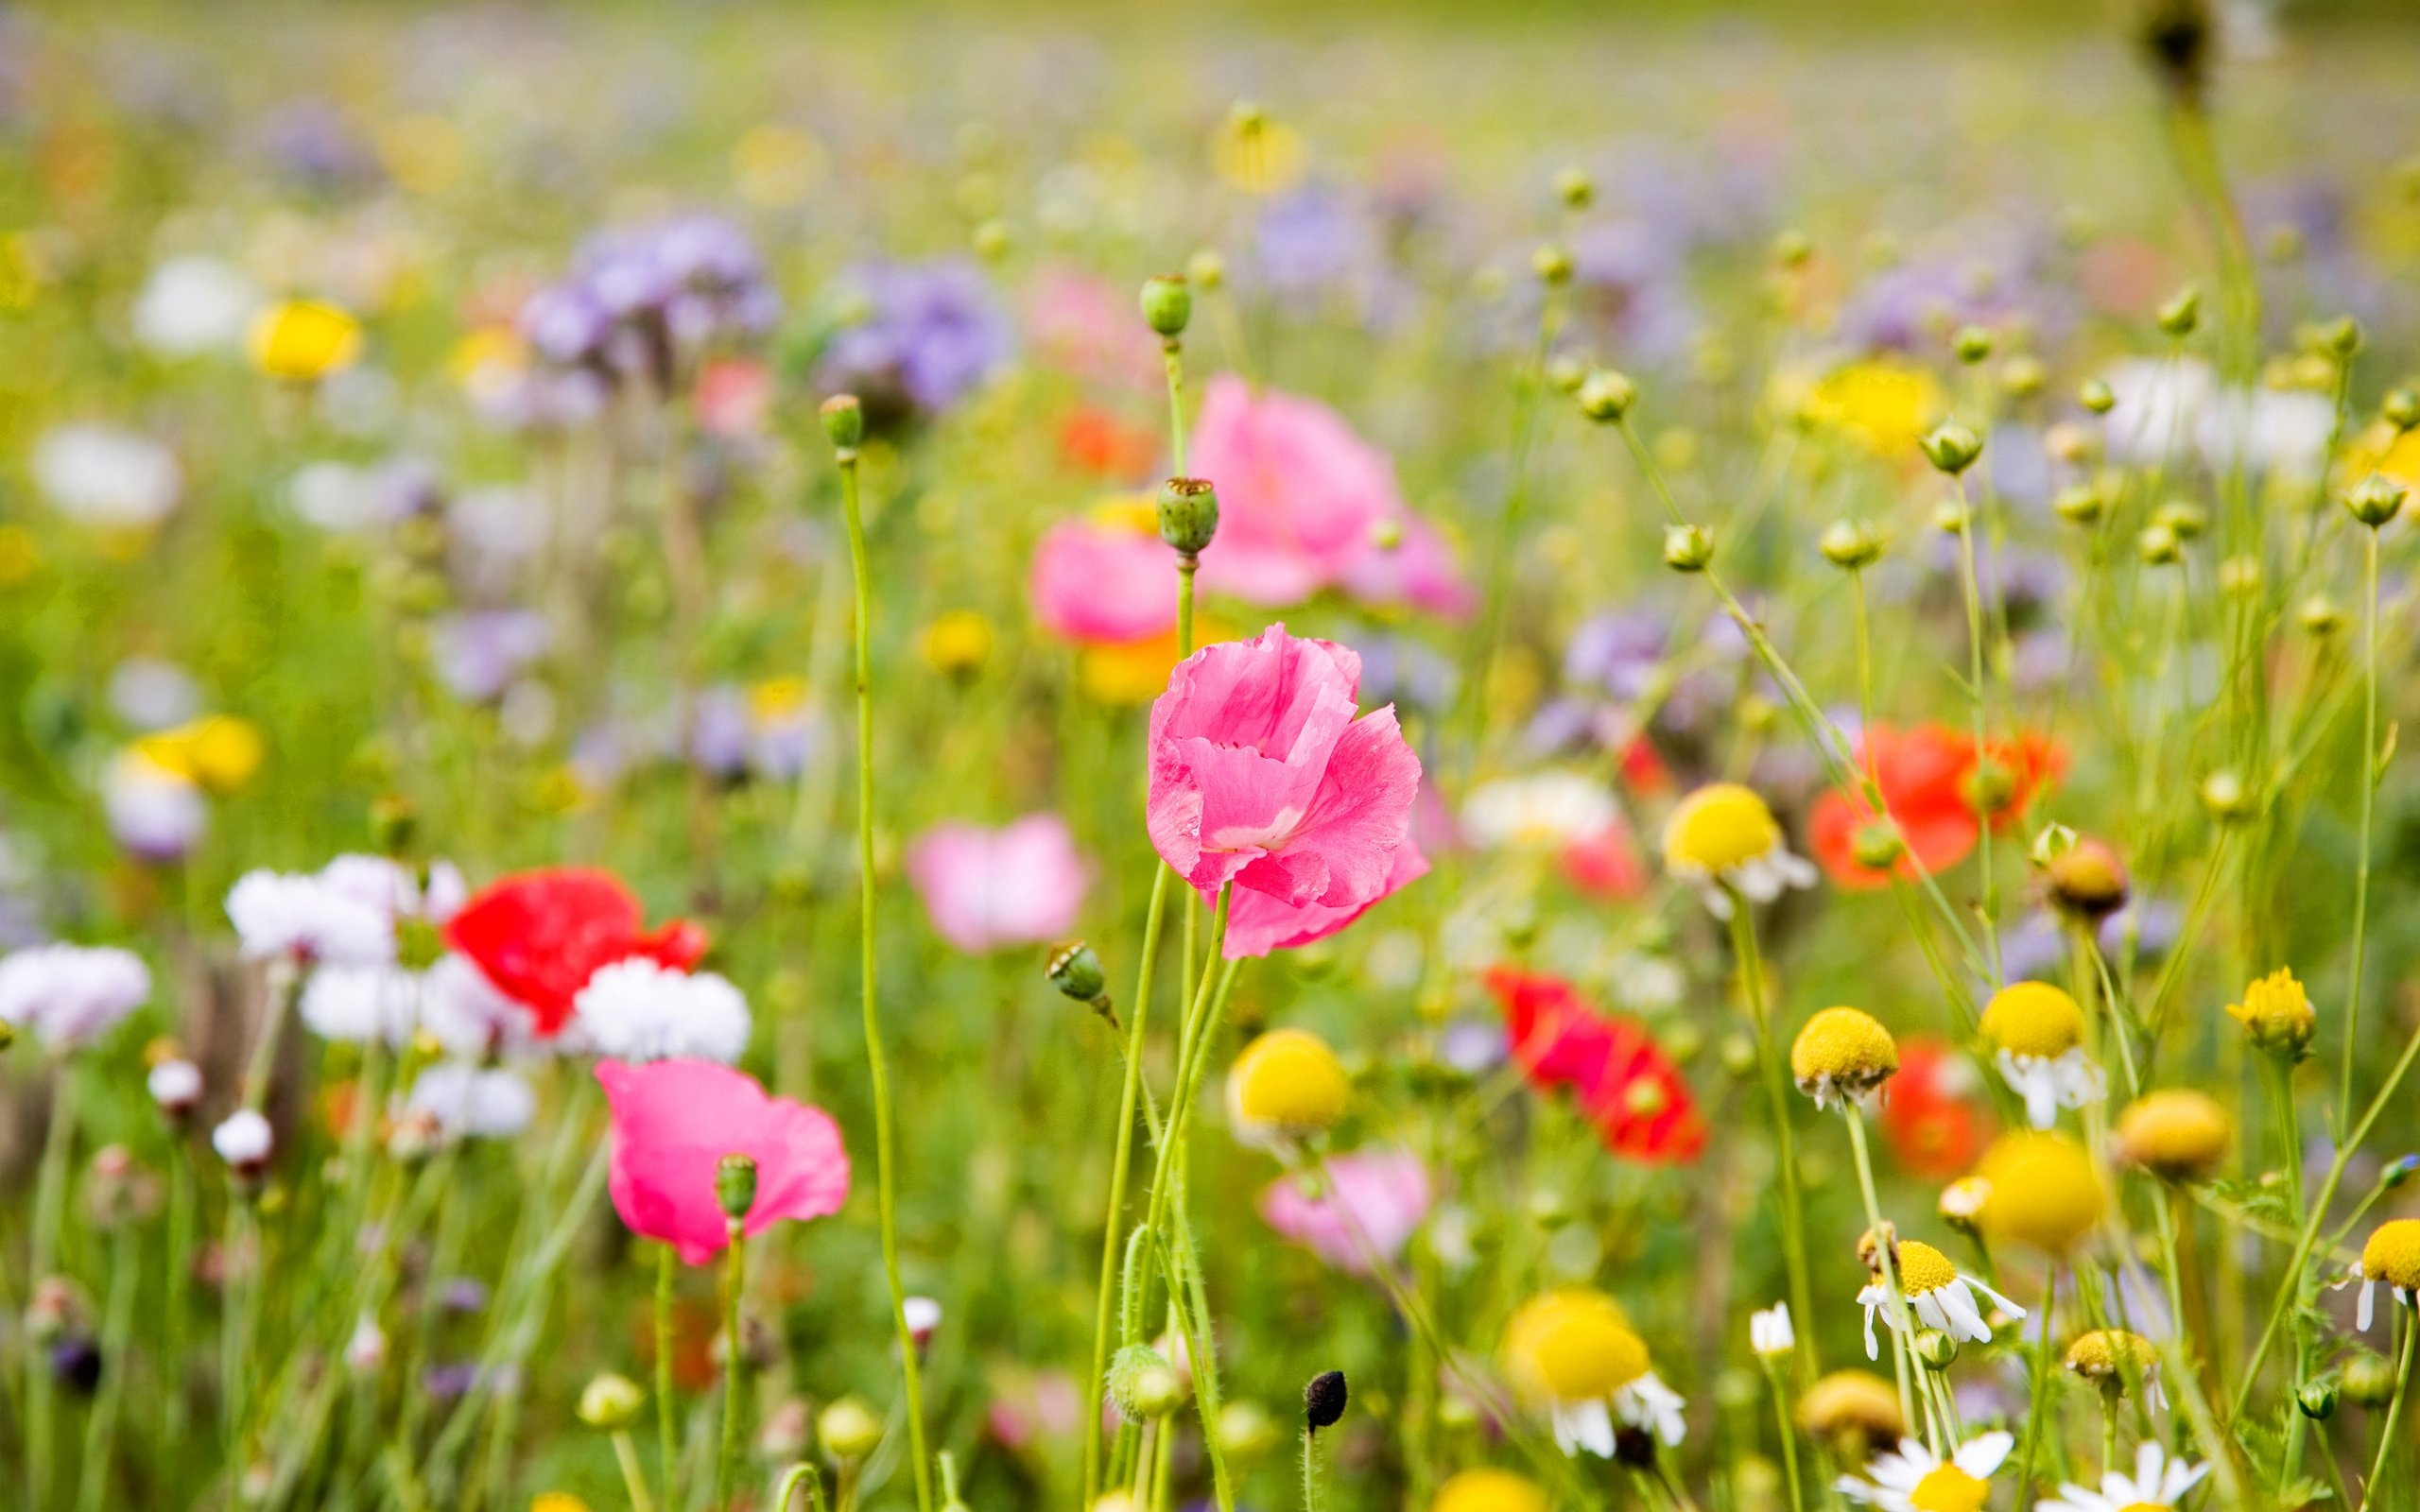 Summer Meadow Colorful Flowers 2560 x 1600 Download Close 2560x1600